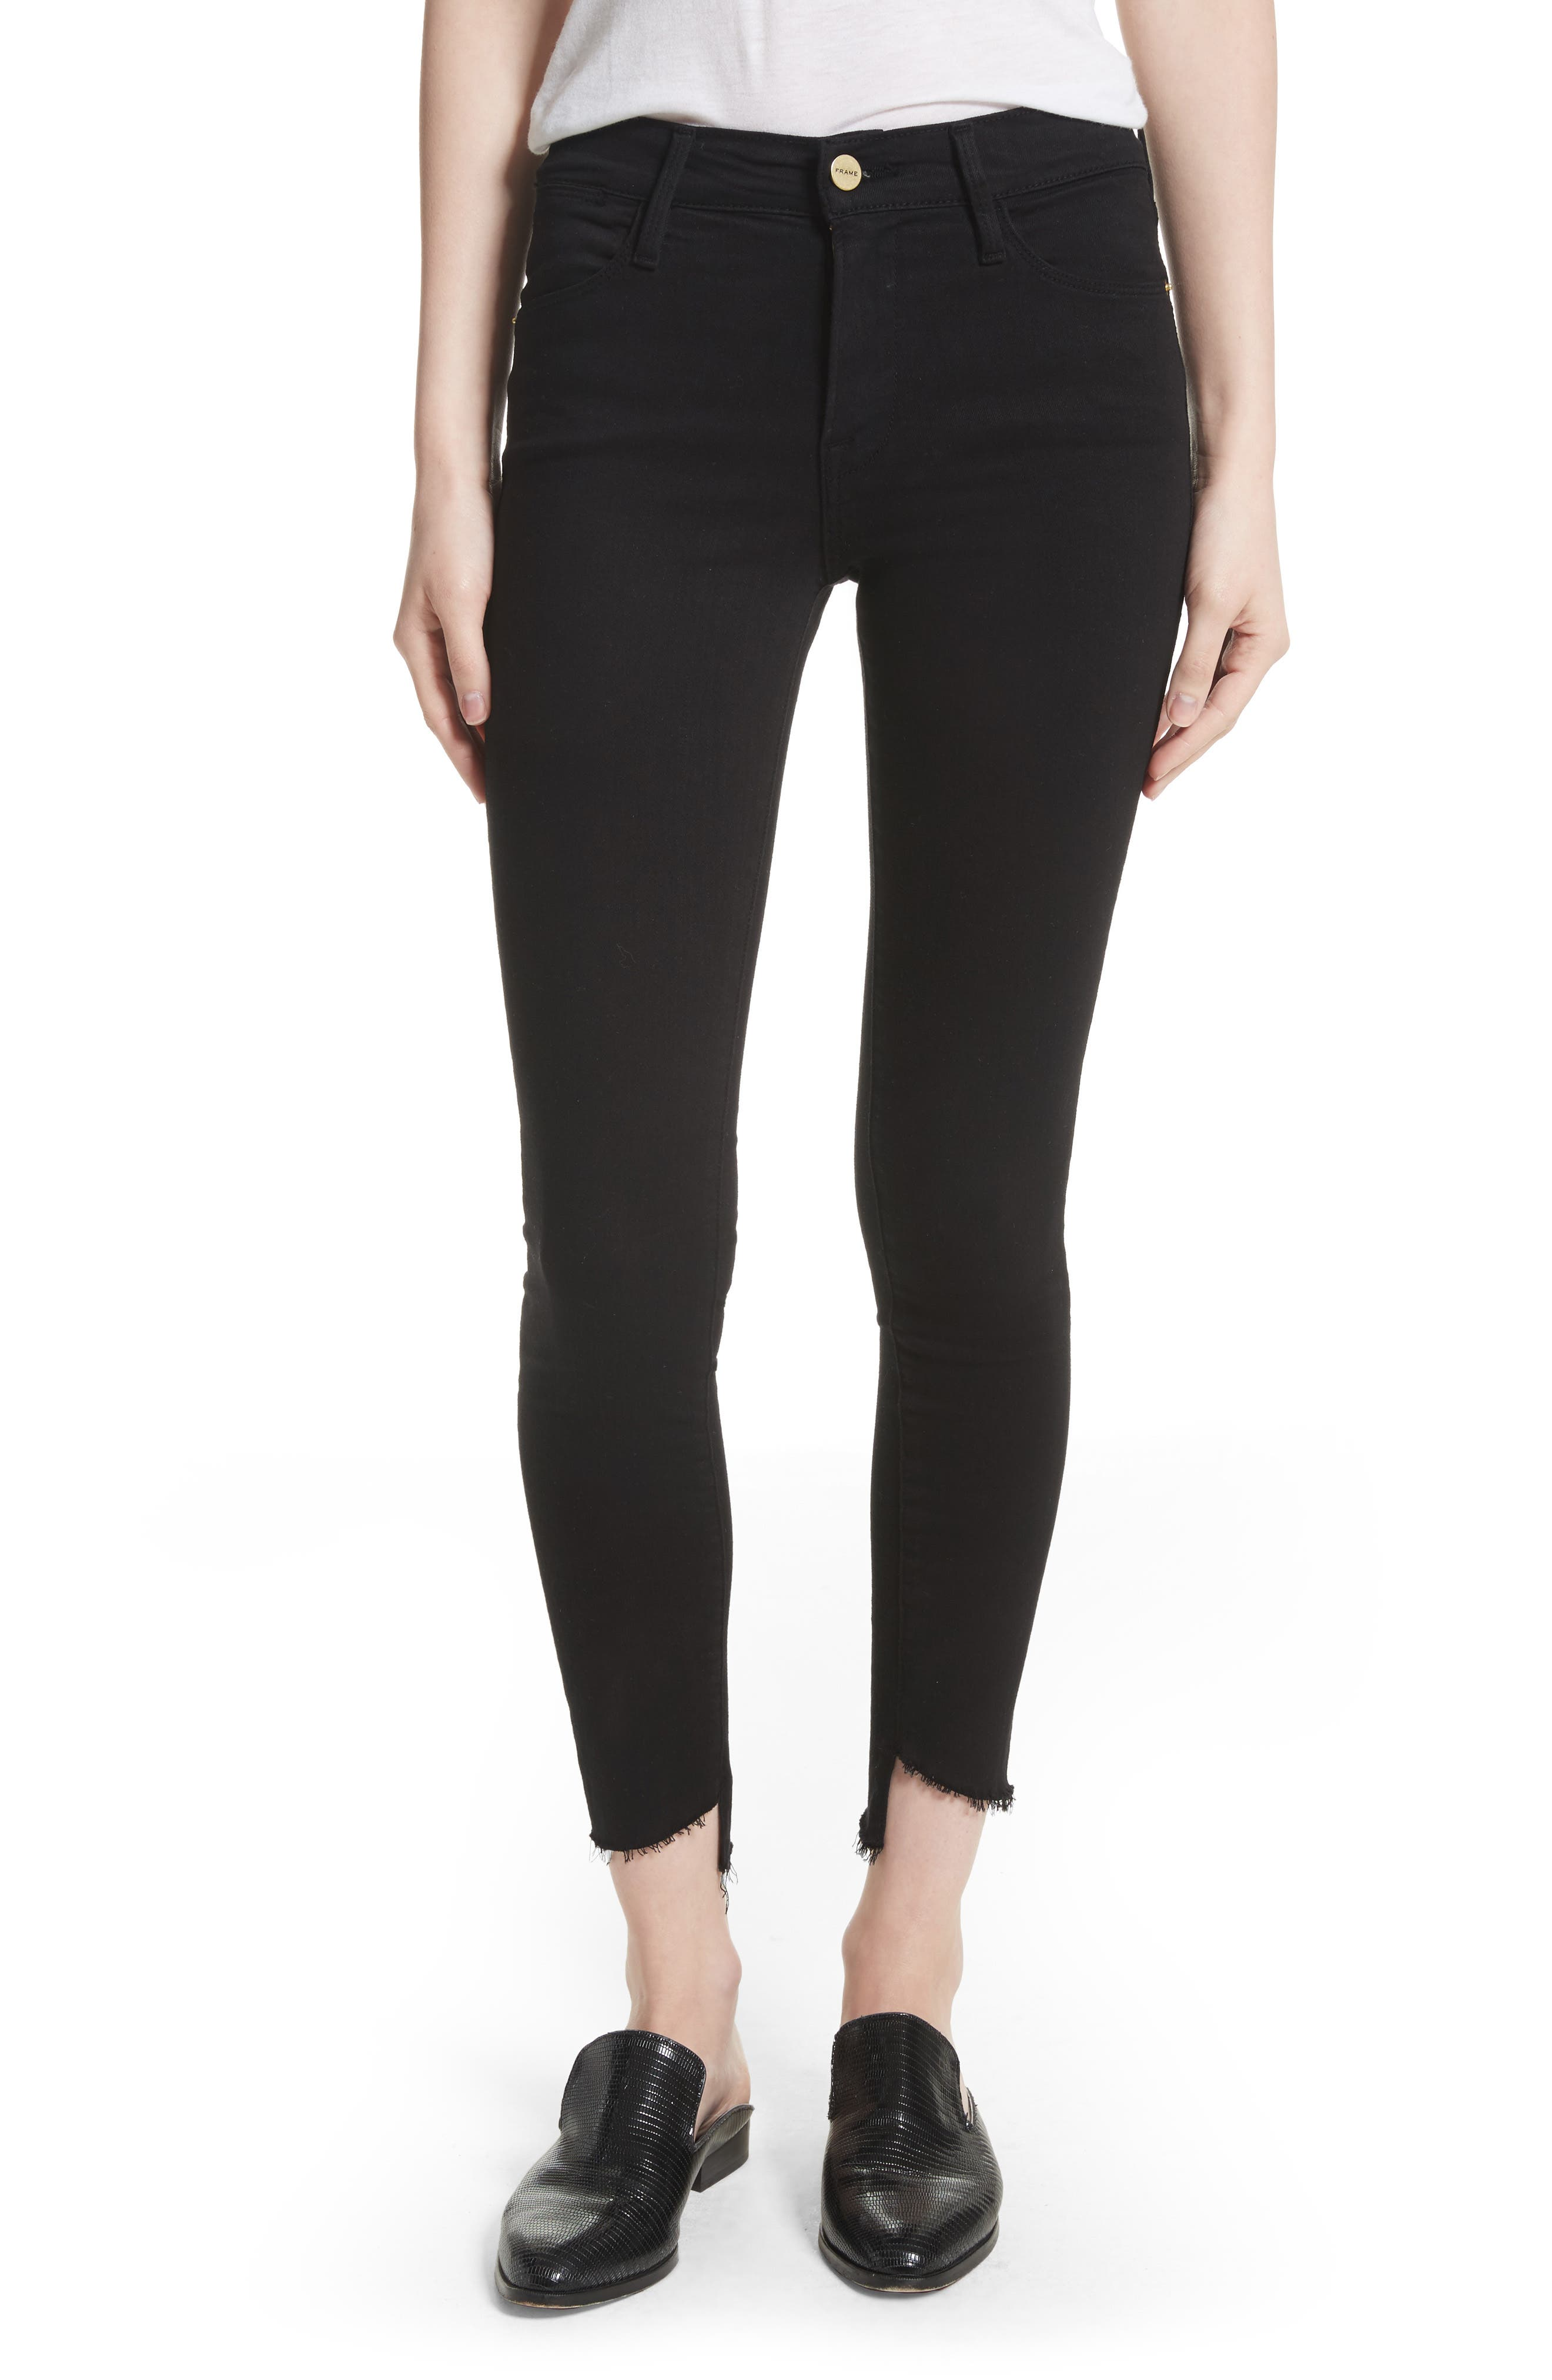 Main Image - FRAME Le High Skinny Step Hem Jeans (Film Noir) (Nordstrom Exclusive)